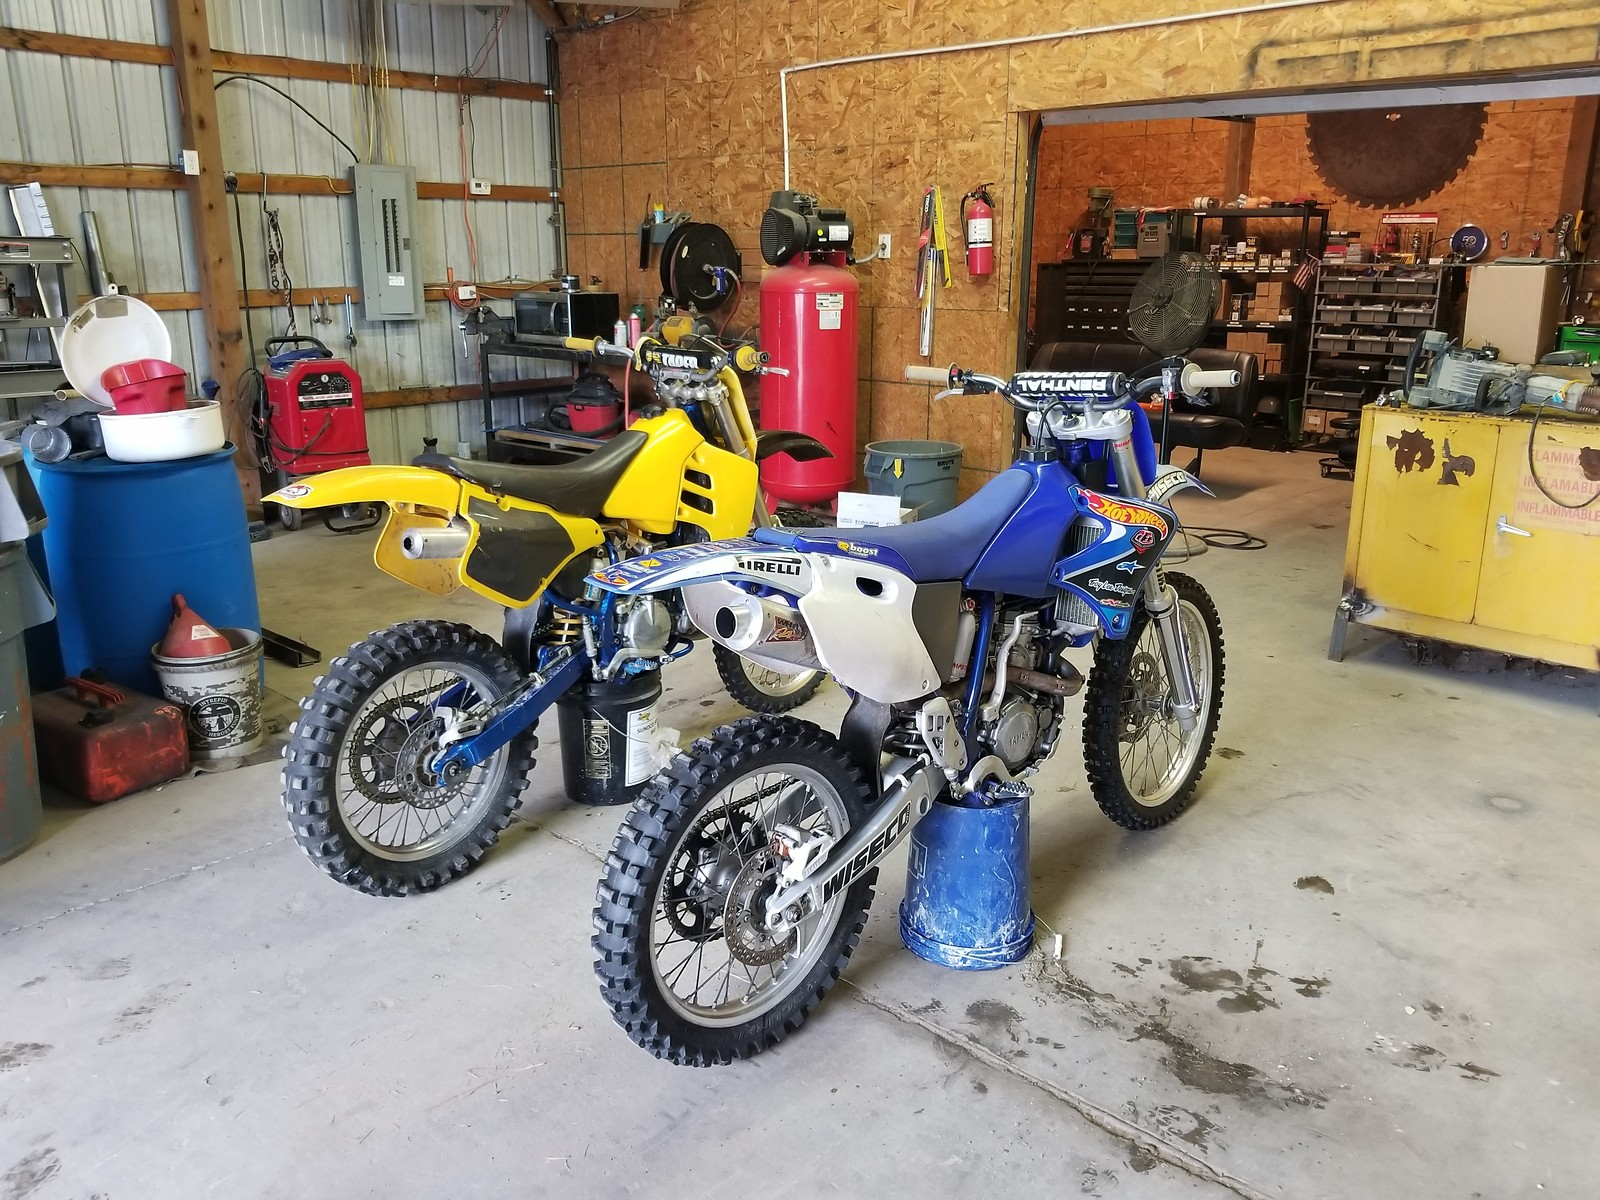 Here's a pic of it with my rm/x 250